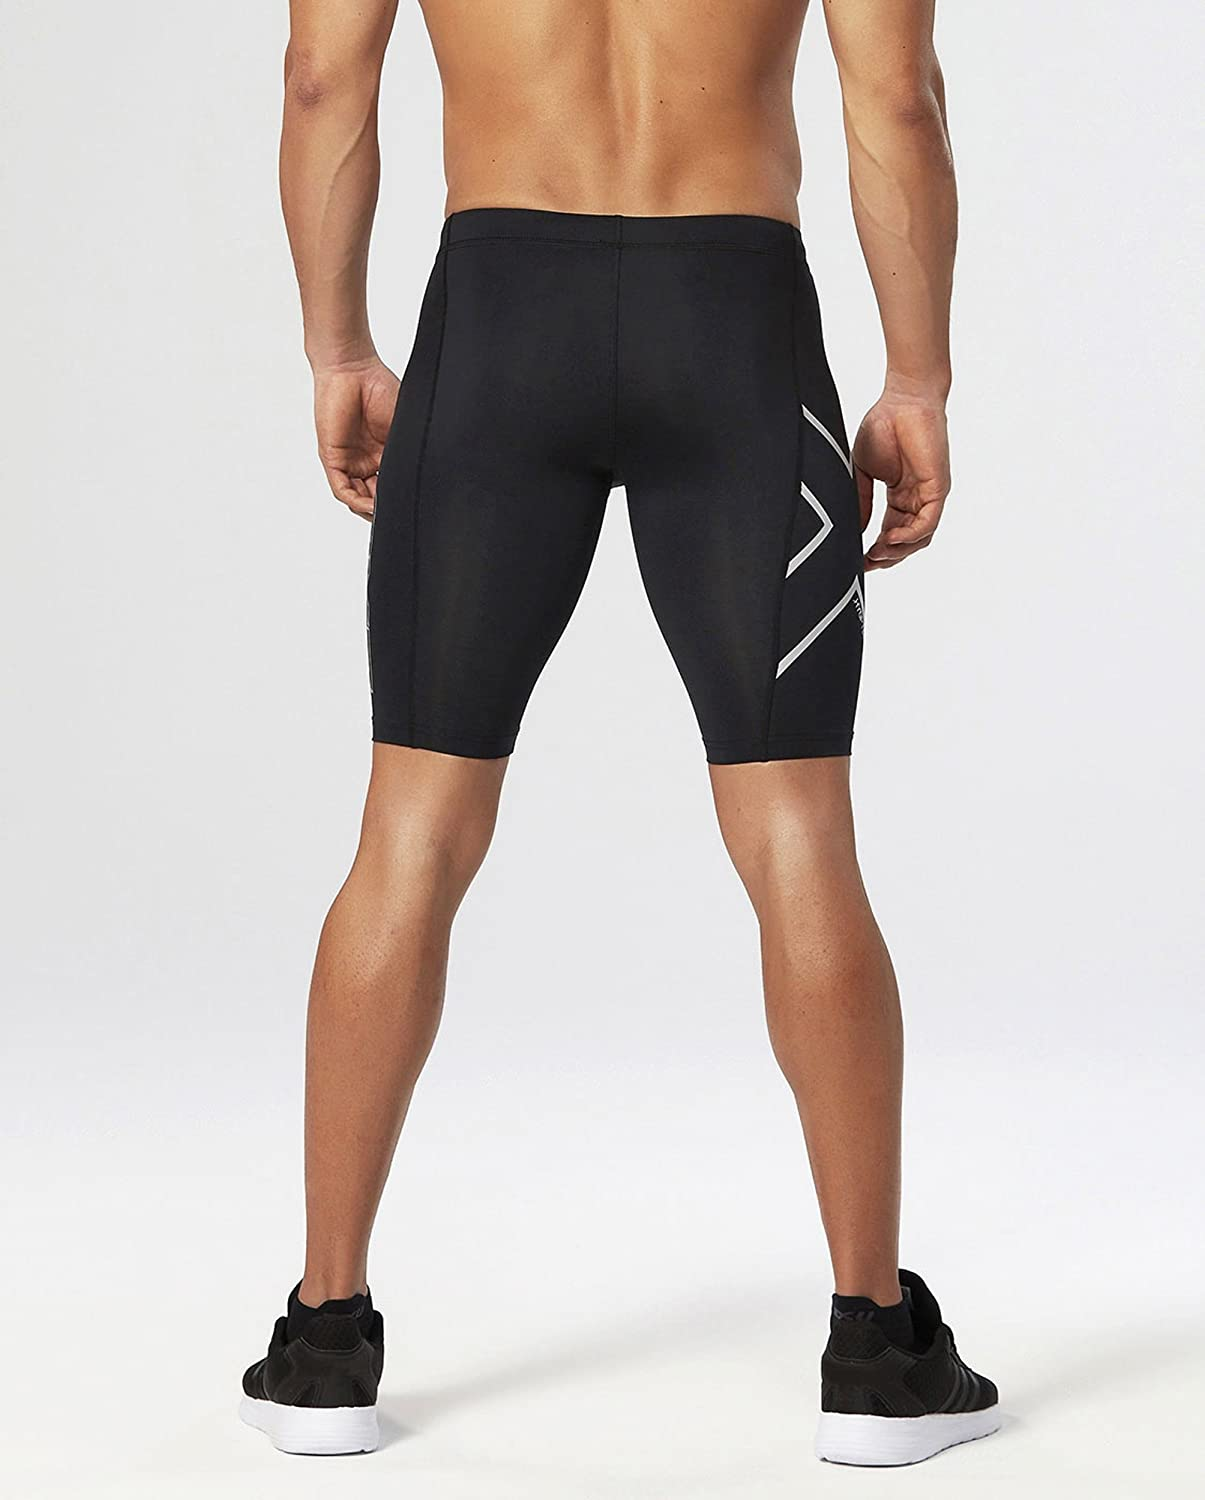 d7b688c8a72f9 Amazon.com: 2XU Men's Hyoptik Compression Shorts: Clothing